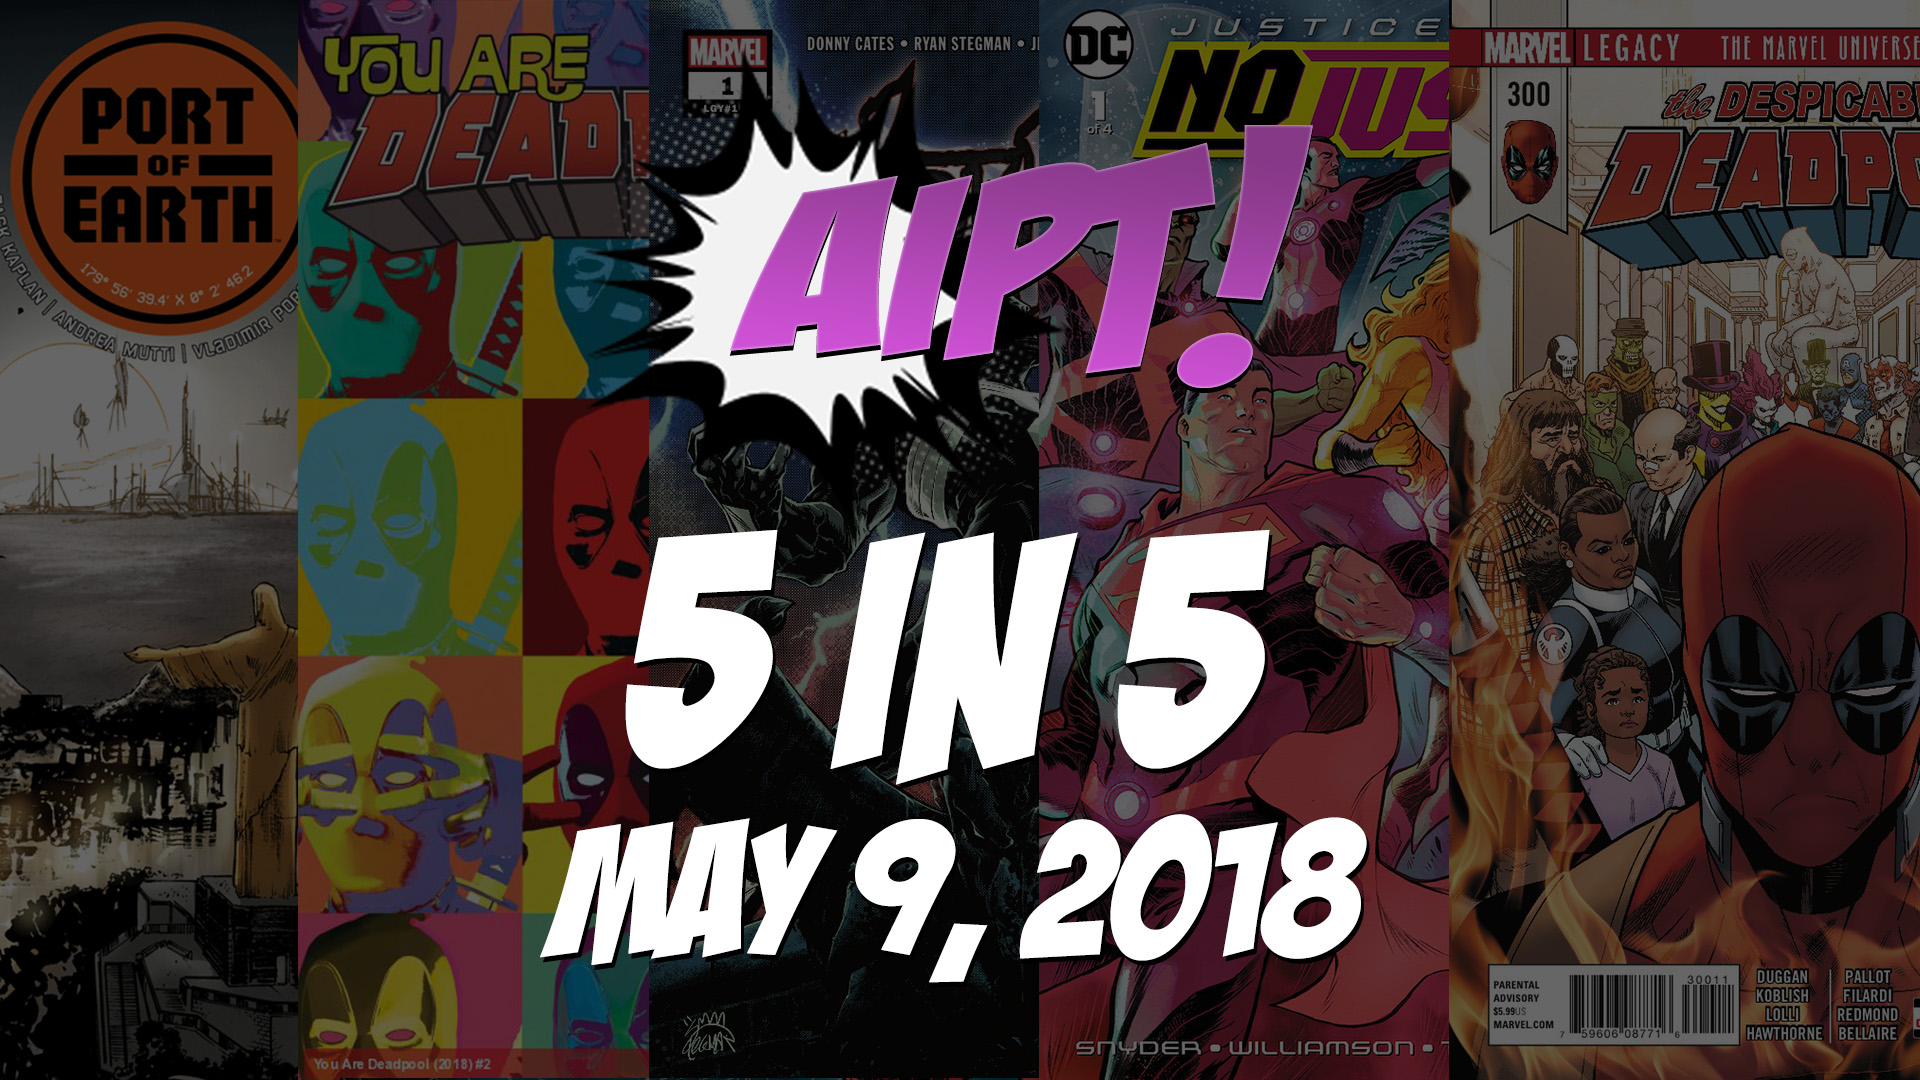 May 9, 2018's 5 in 5: The five comic books you should buy this week